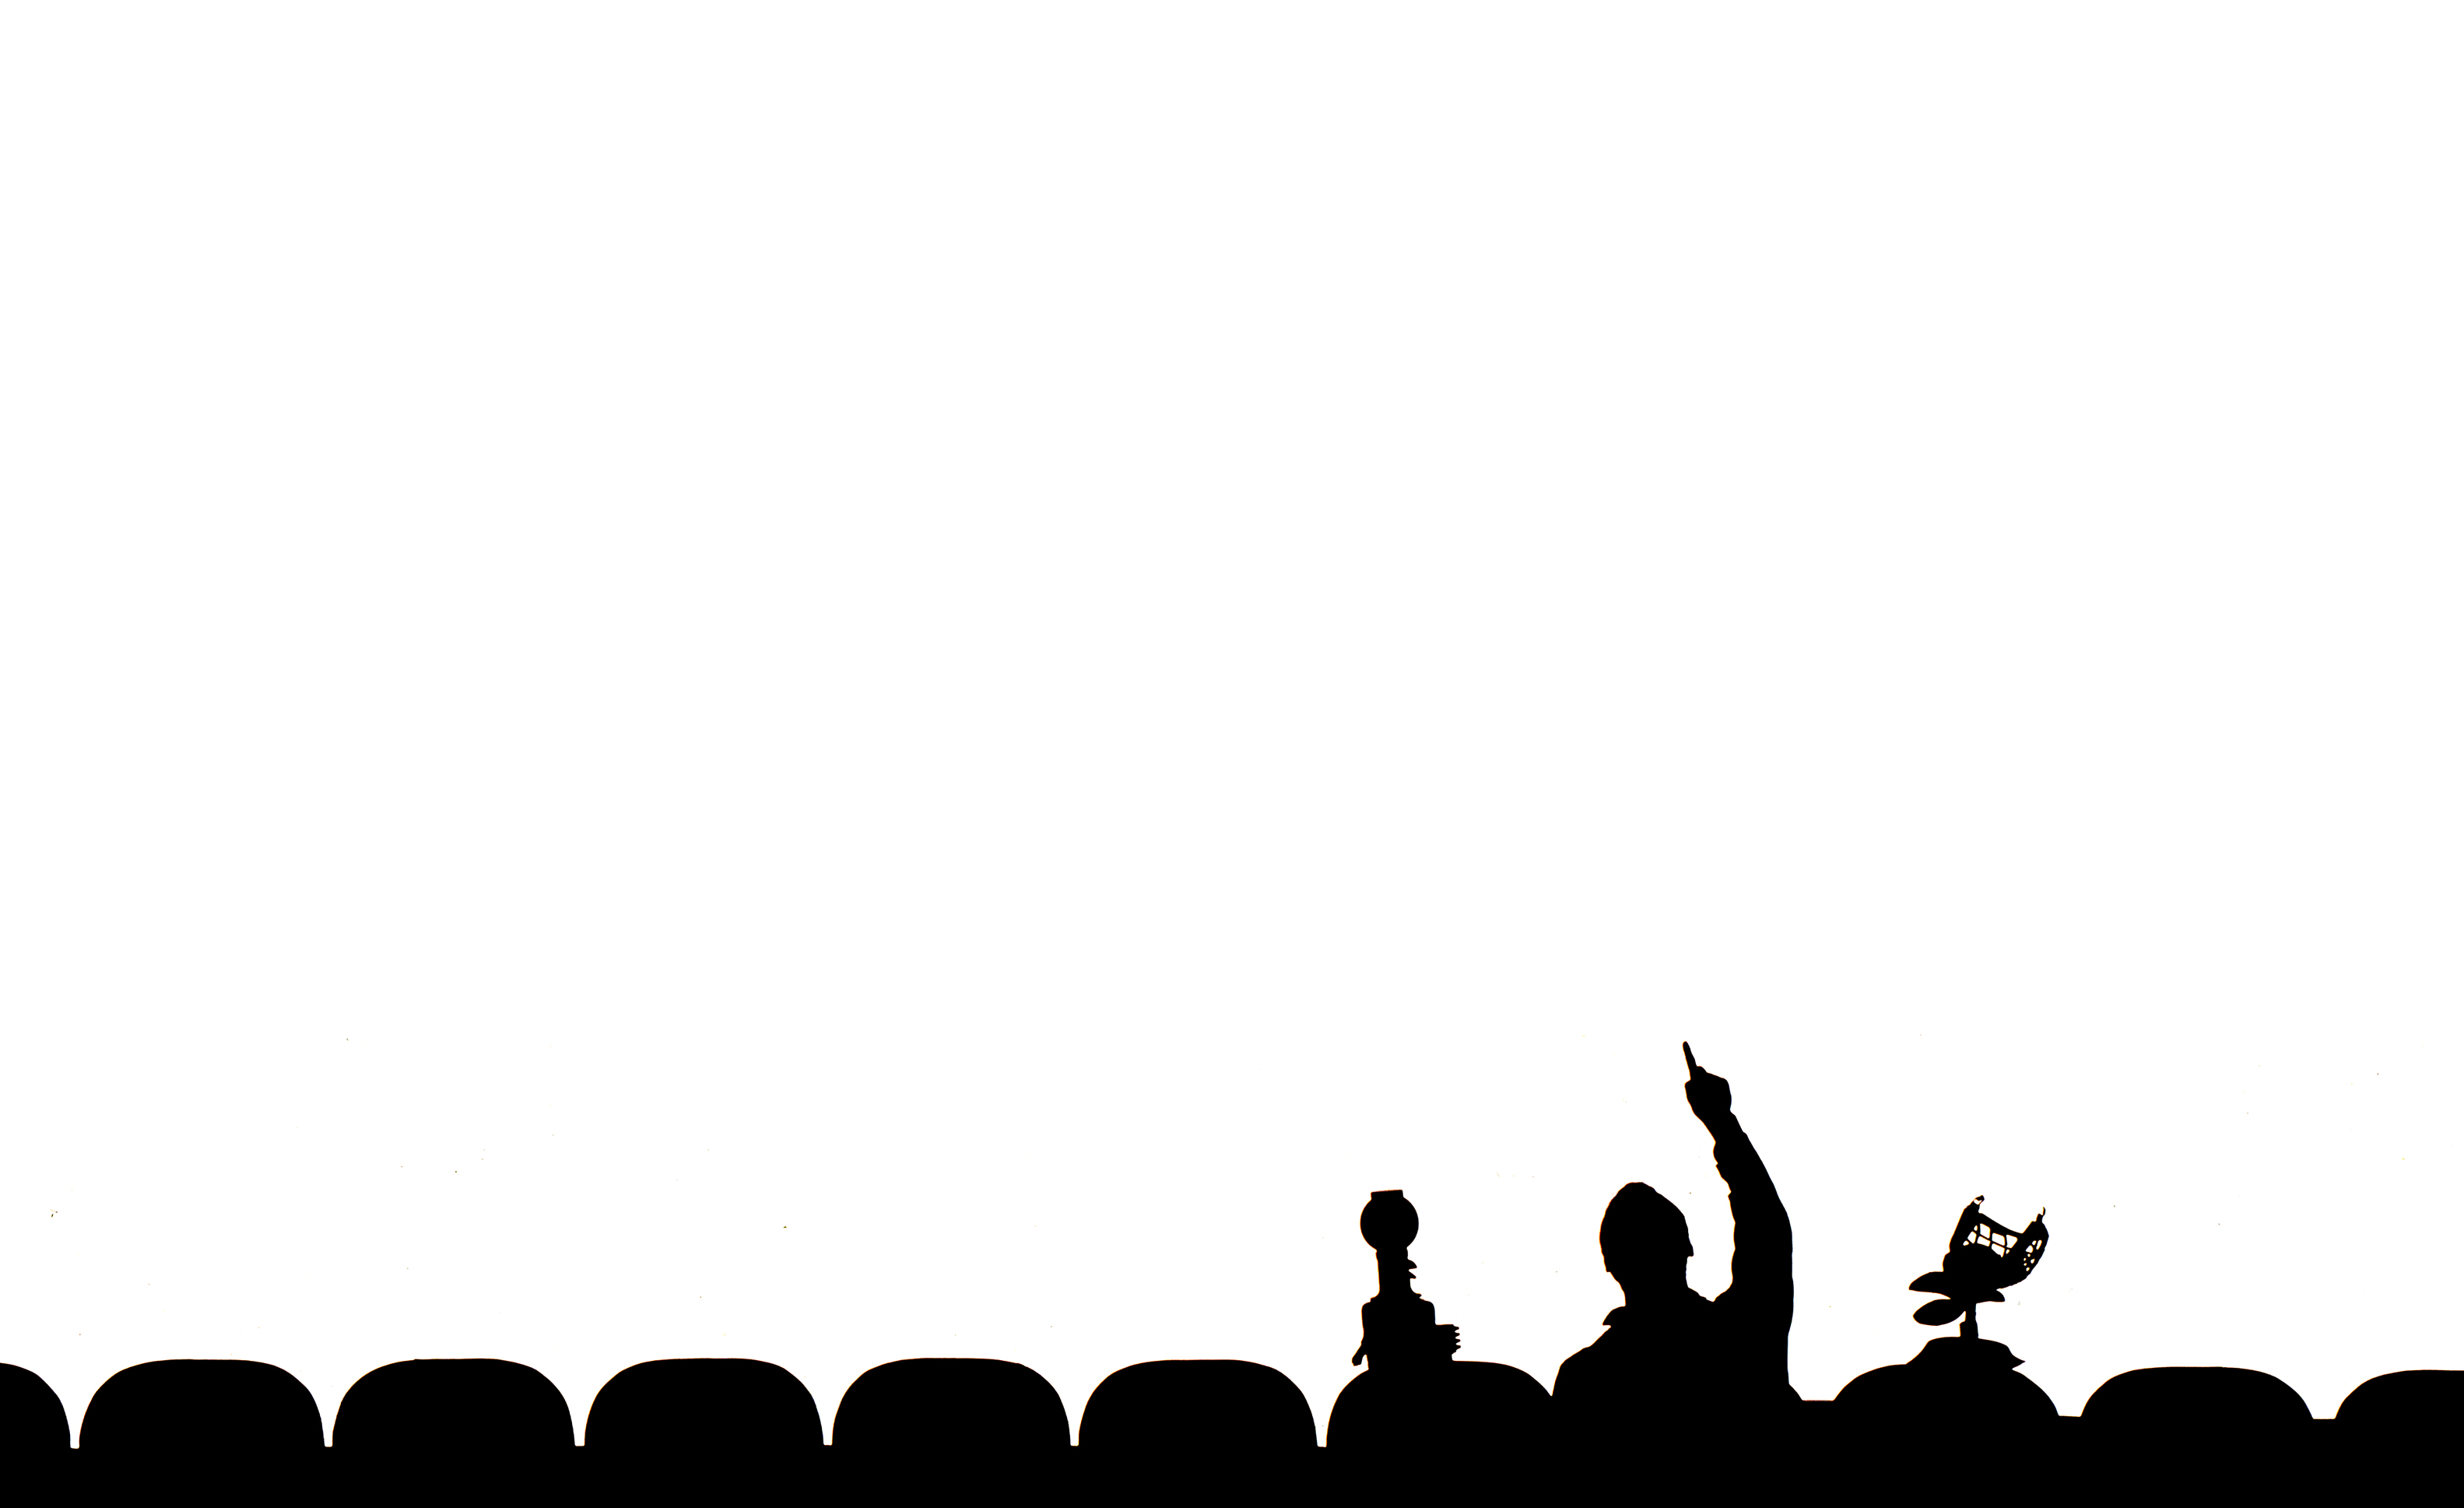 Mst3k wallpaper anyone Think of the possibilities   Imgur 3166x1937